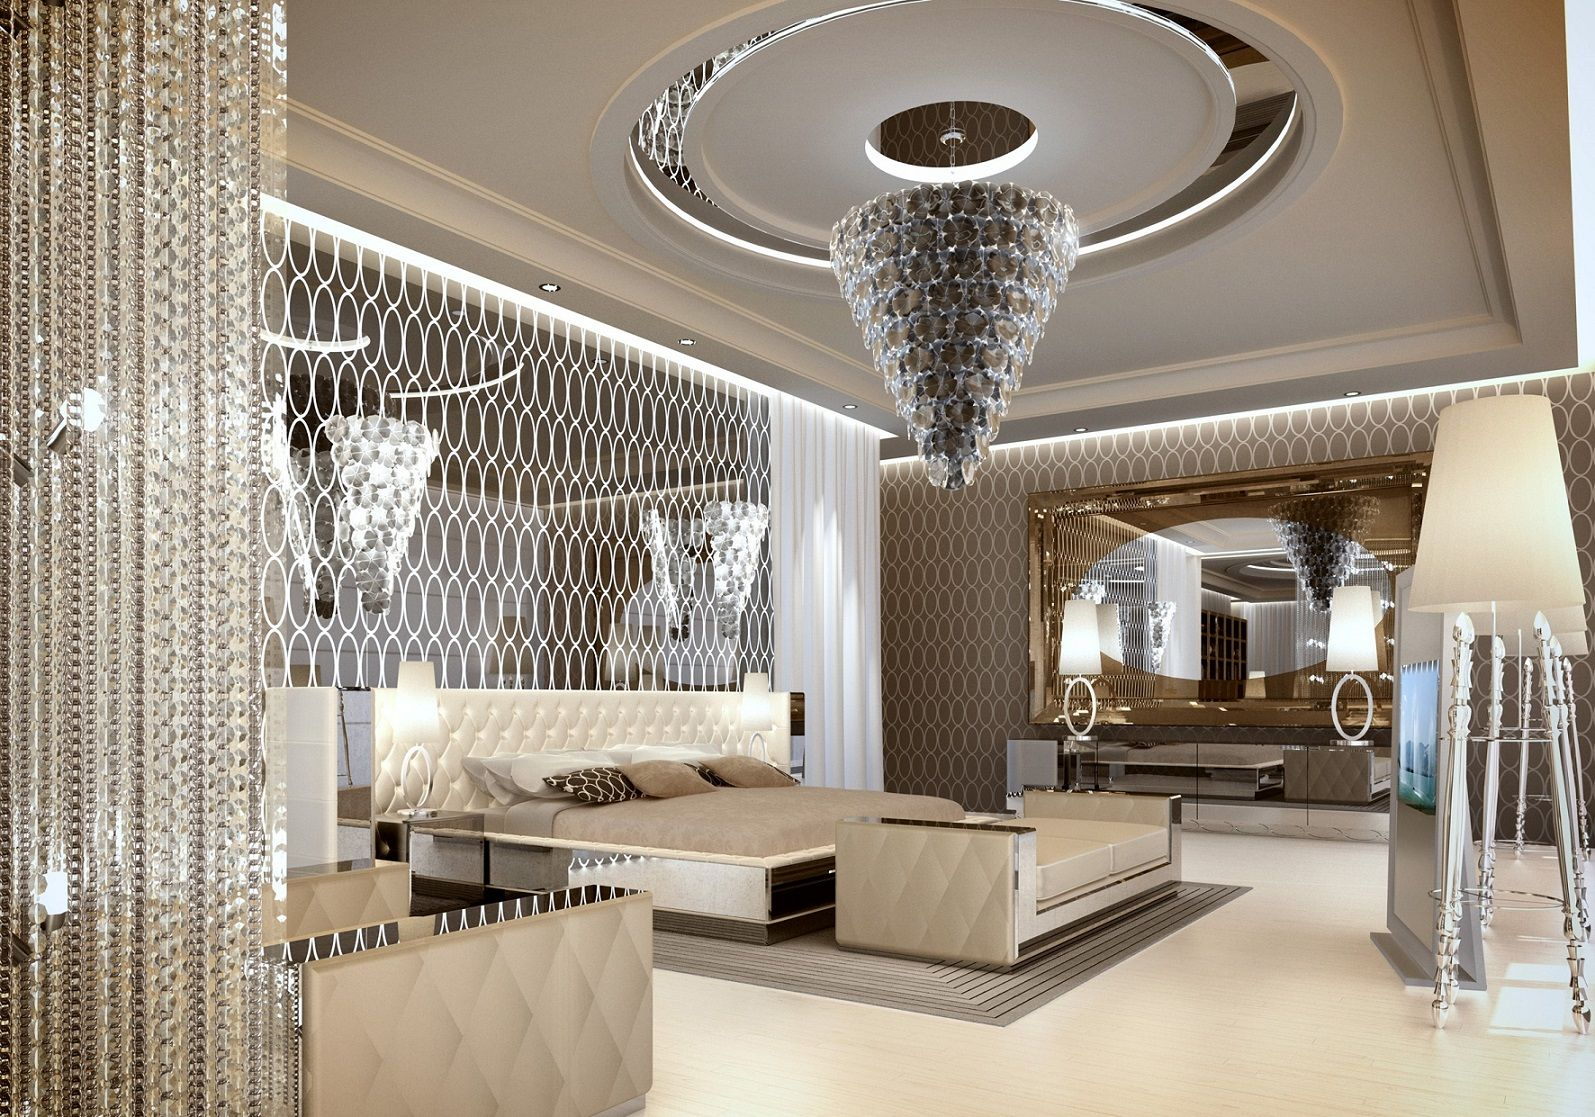 Ultra high end hotel signature collection designer for Luxury interior design